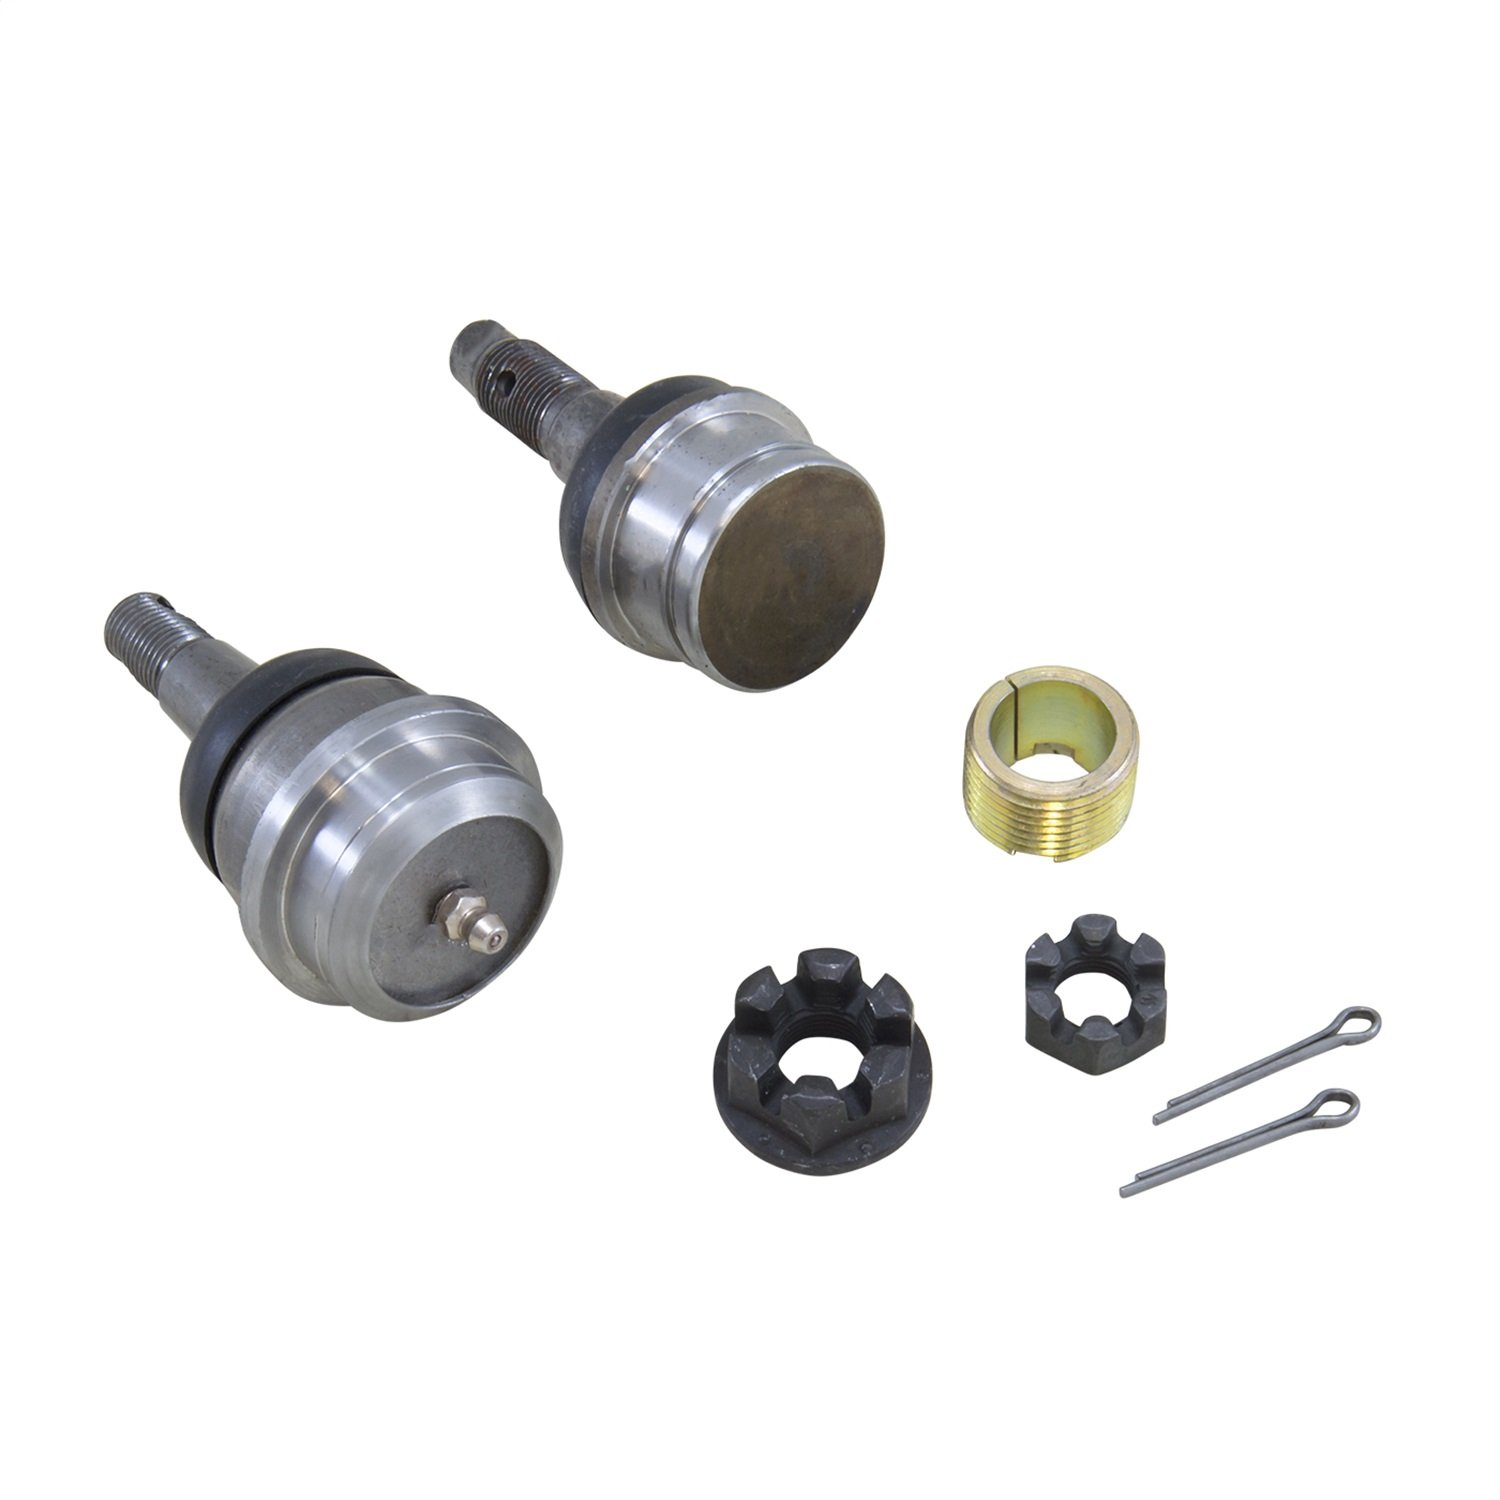 Ball Joint Kit for Dodge Dana 60 Differential YSPBJ-016 Yukon Gear /& Axle